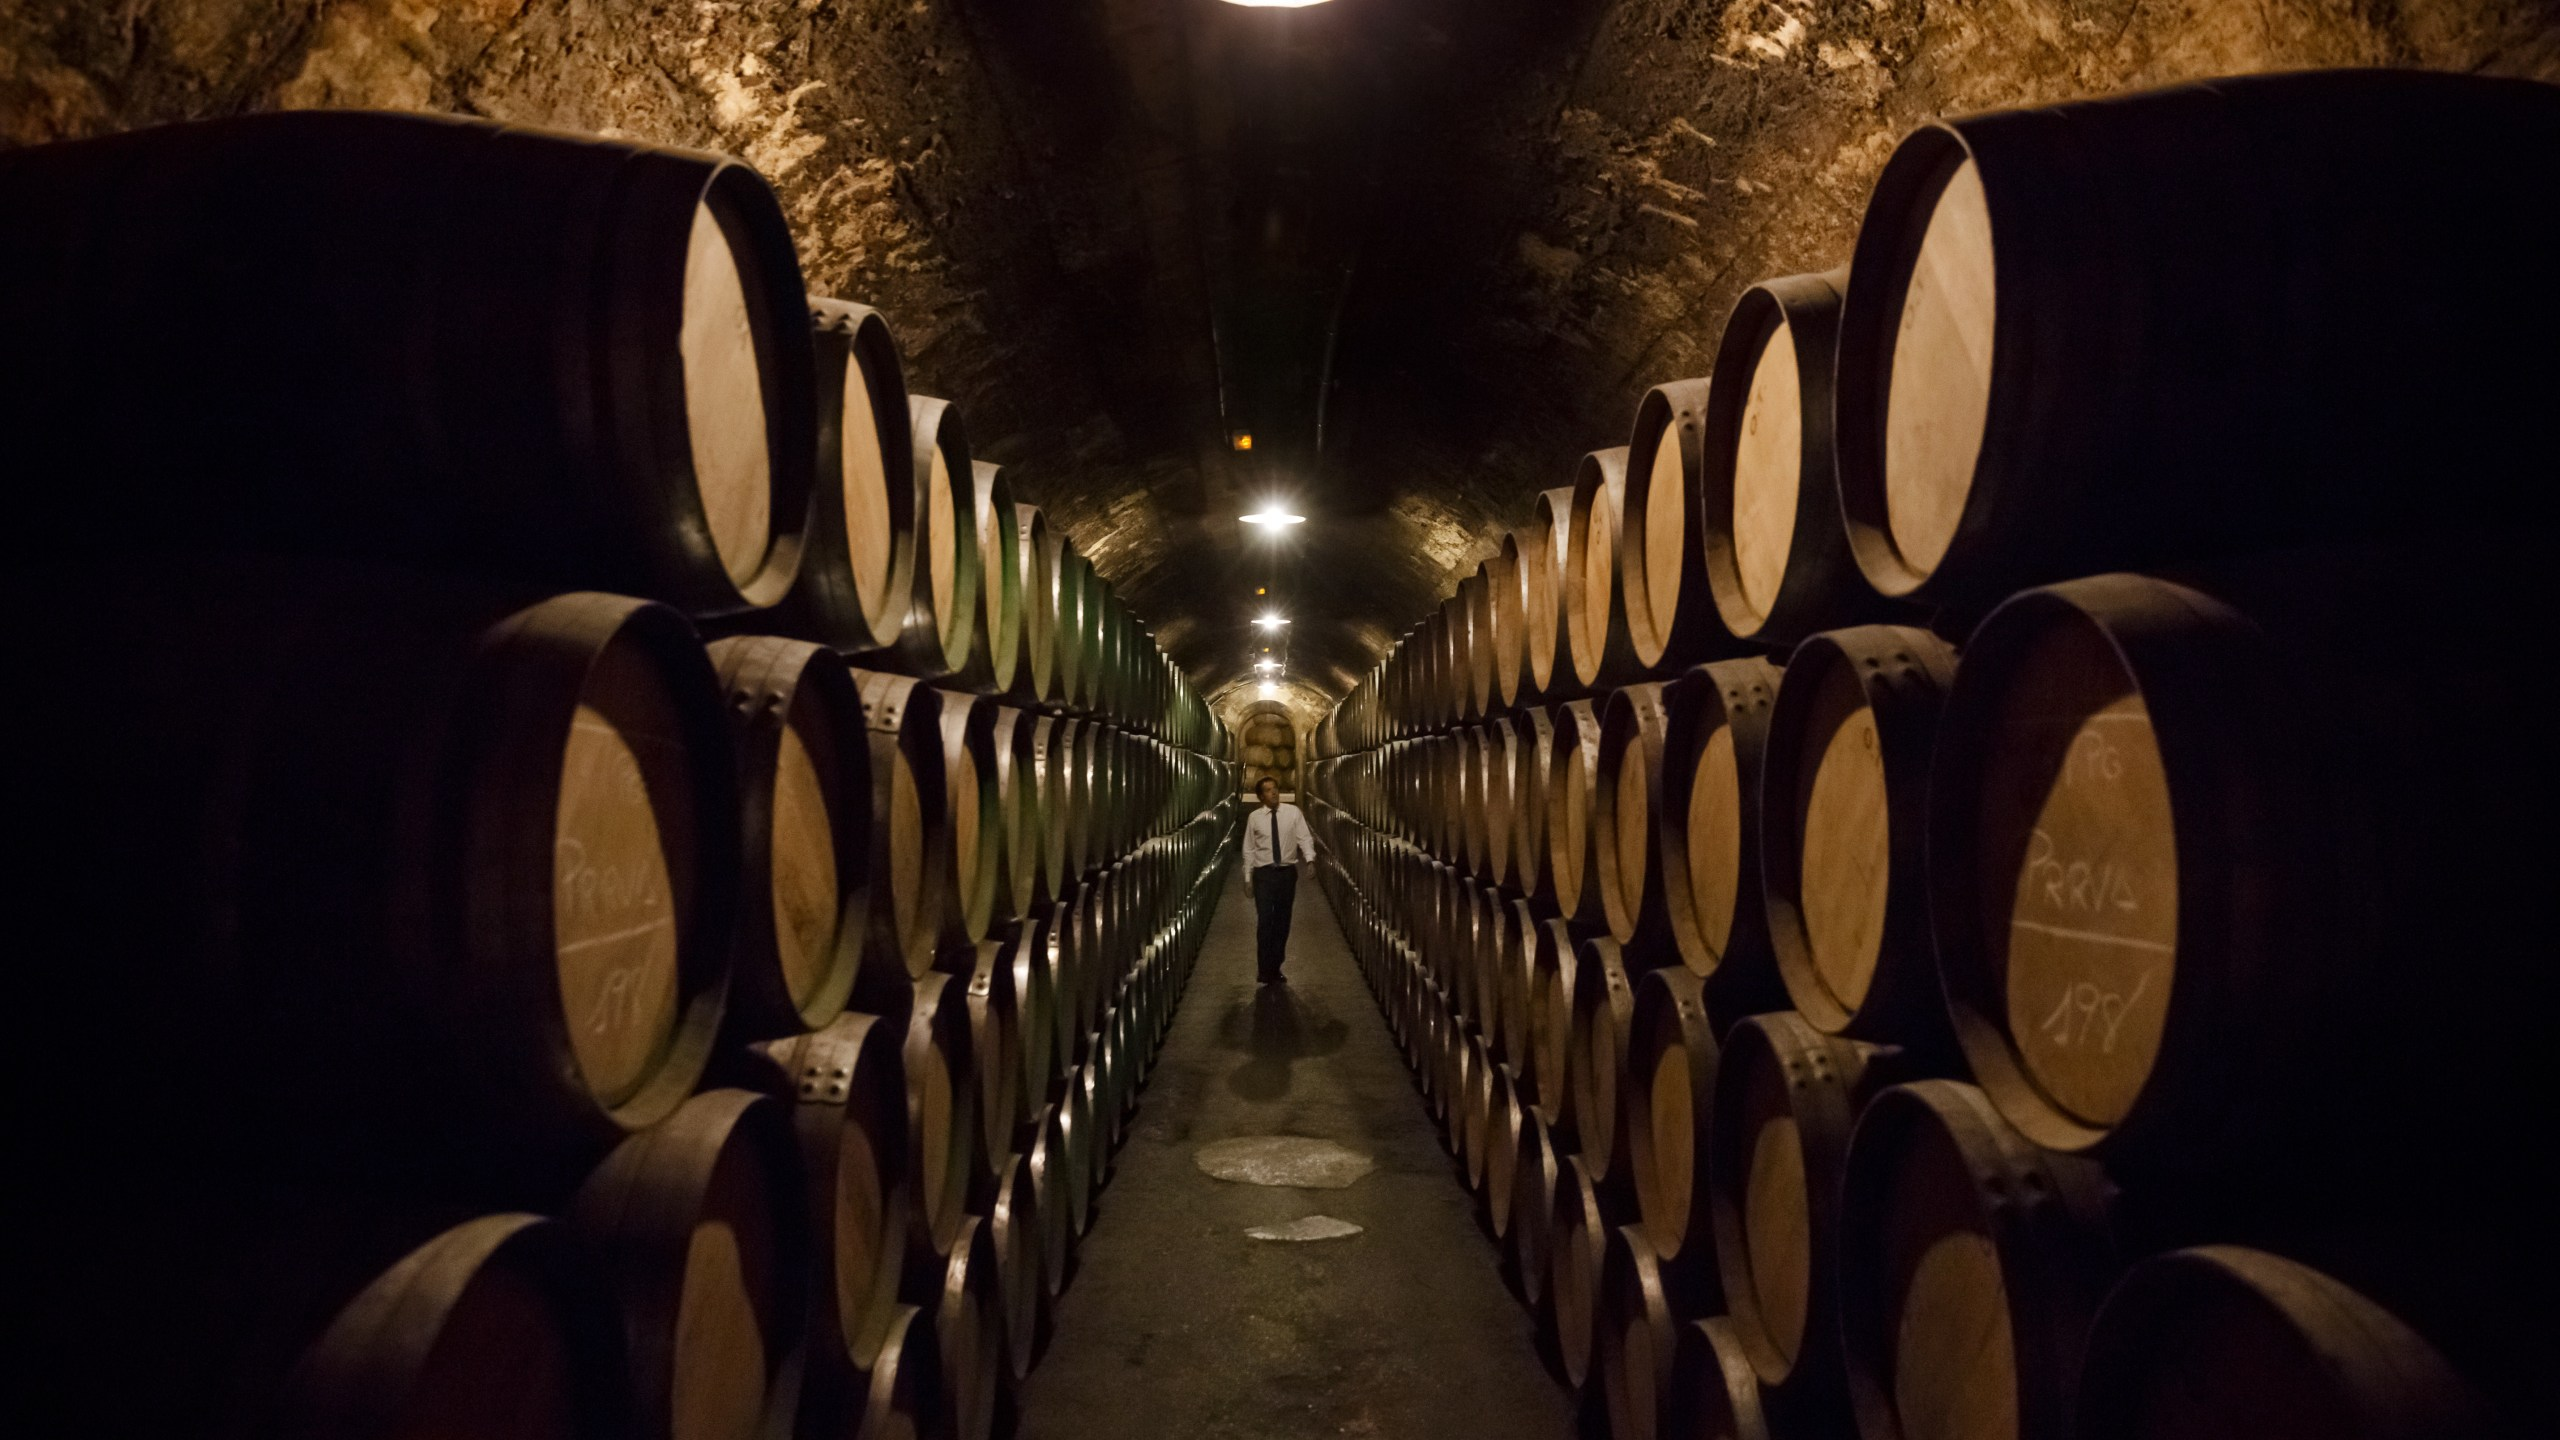 A winery in Spain is seen in this undated file photo. (CESAR MANSO/AFP via Getty Images)